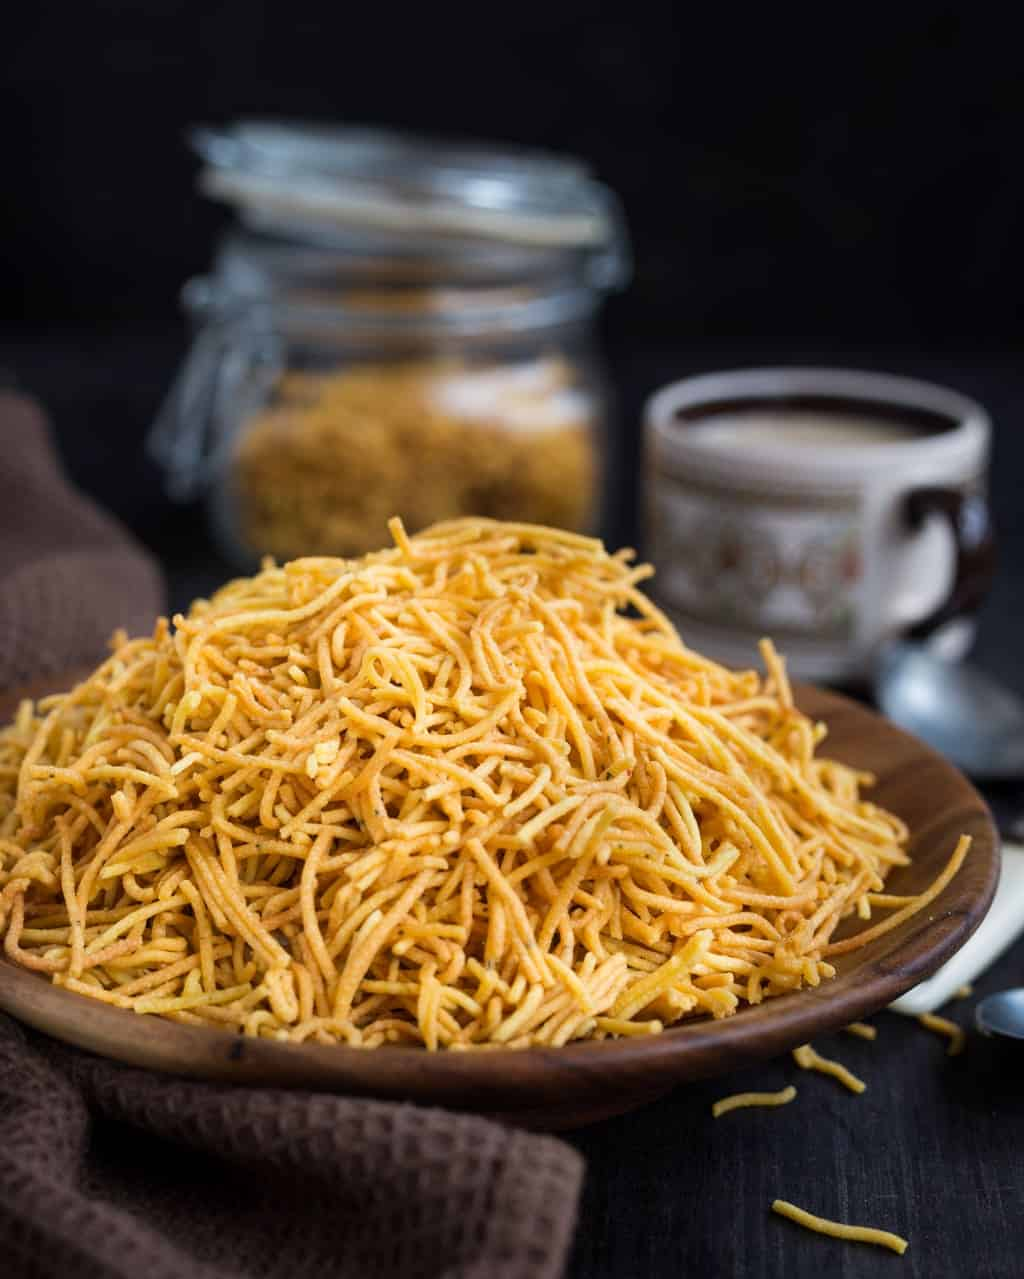 Crispy sev with an added twist of garlic and cheese in it. Perfect for munching or use as a topping.